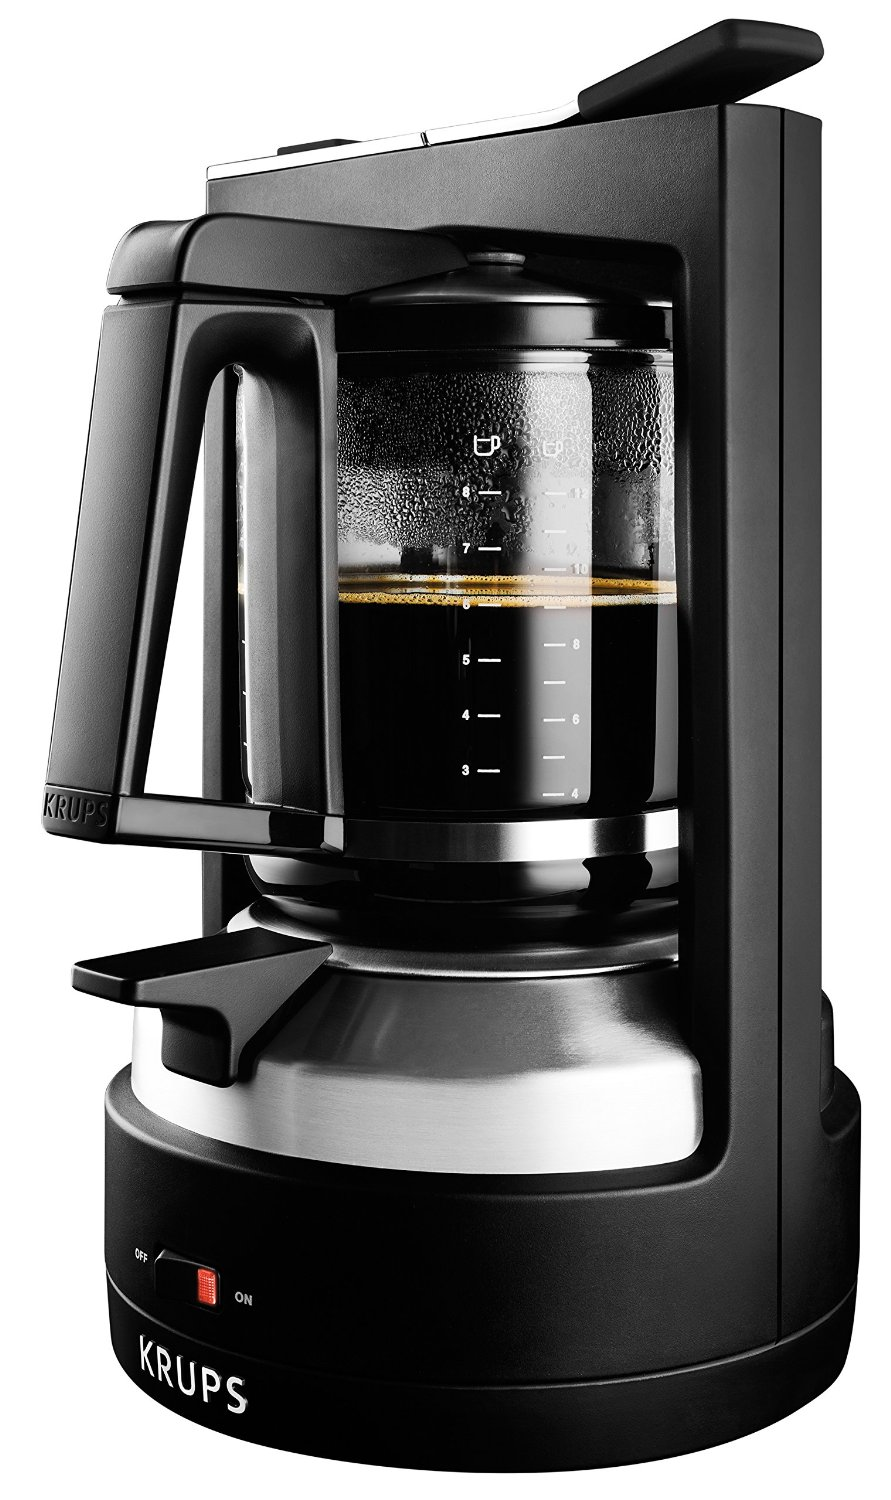 2016 Best Drip Coffee Maker Product Reviews & Best of 2017